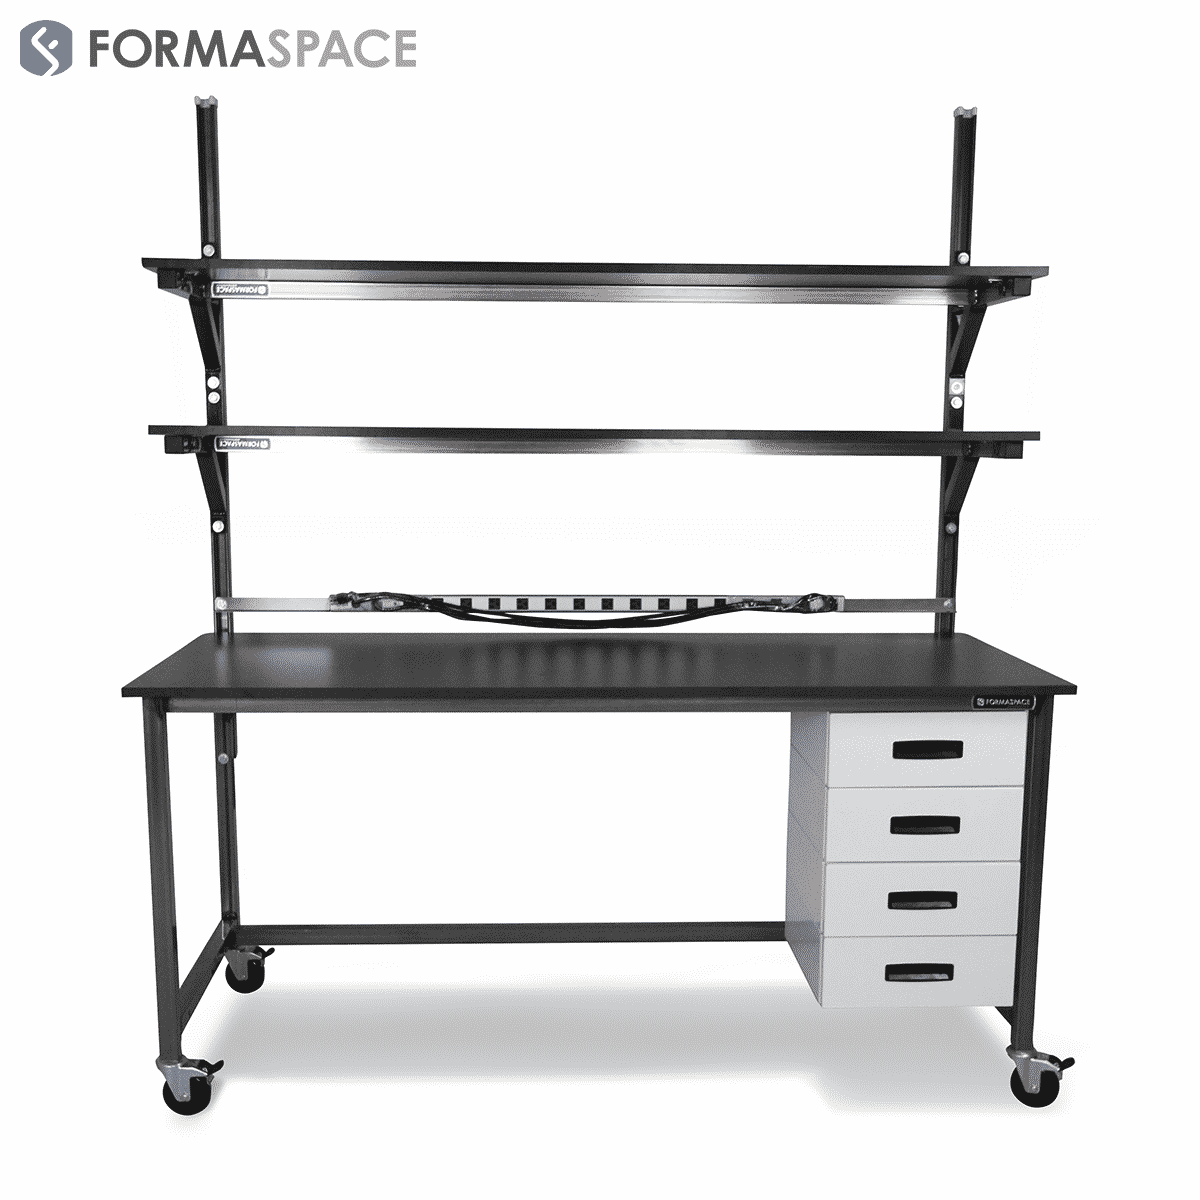 Phenolic Top Benchmarx with Drawers & Upper Shelves